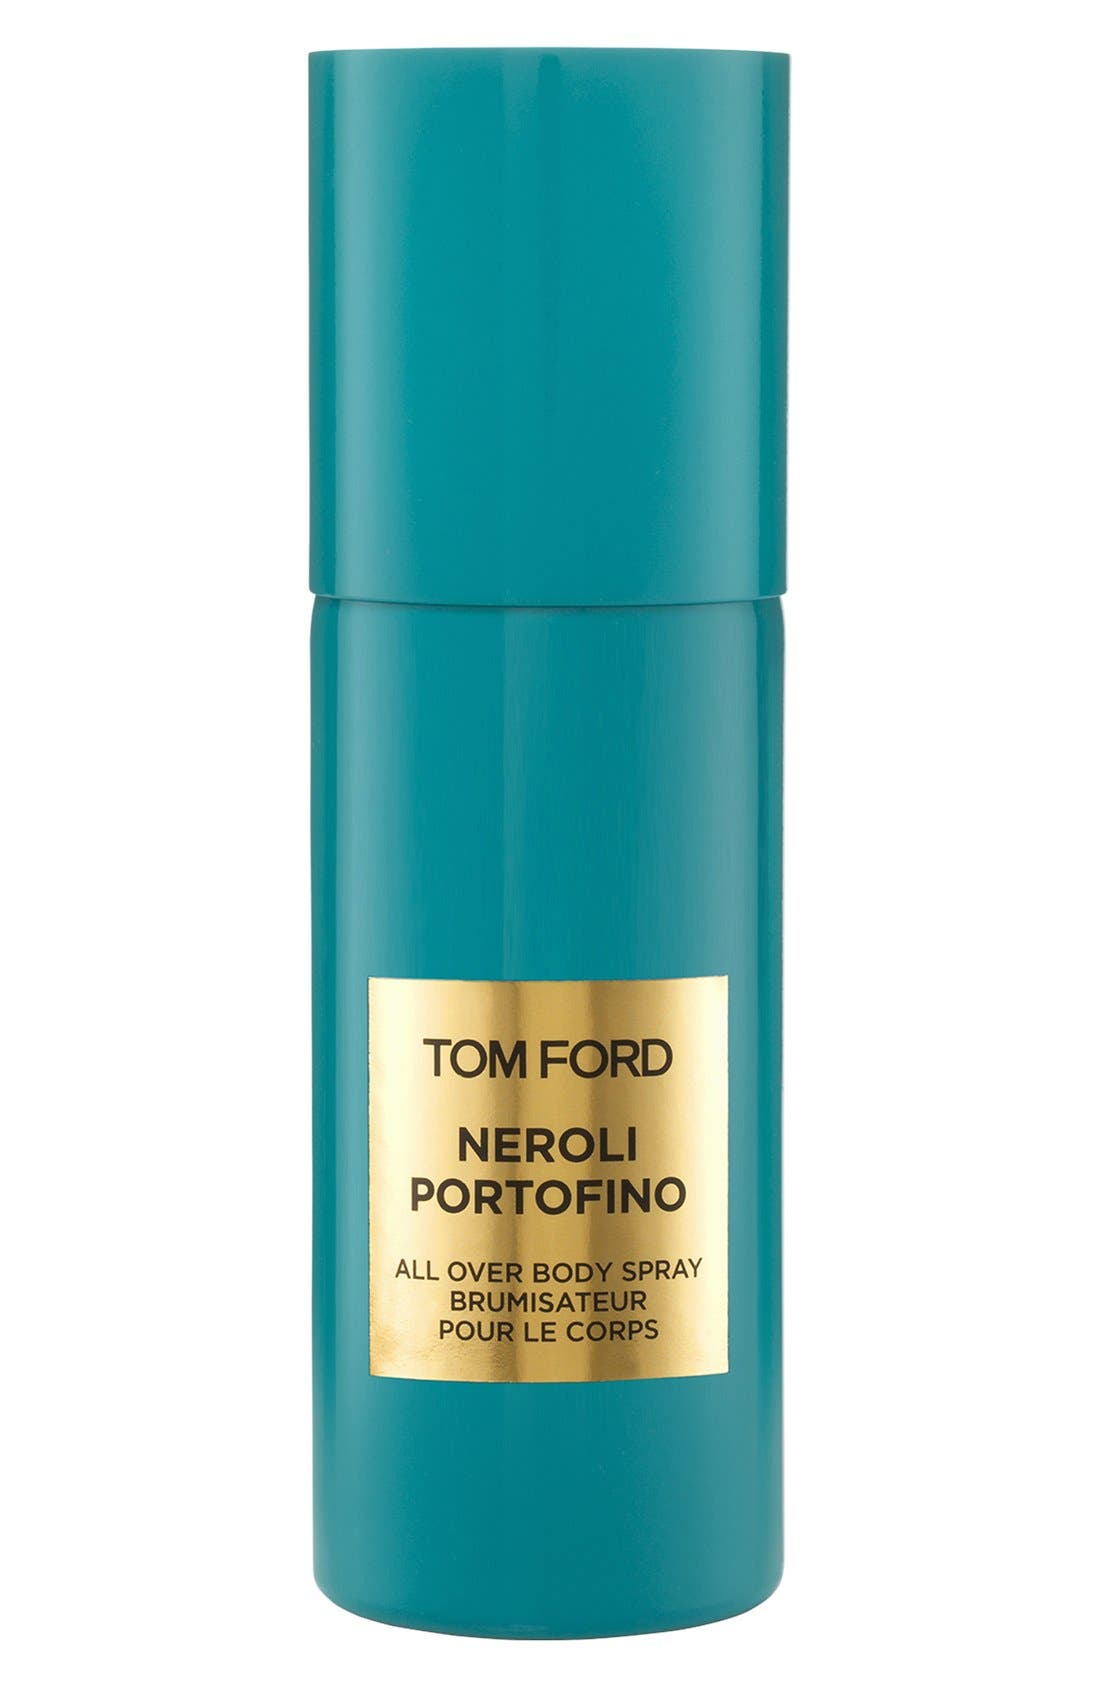 Tom Ford Private Blend Neroli Portofino All Over Body Spray